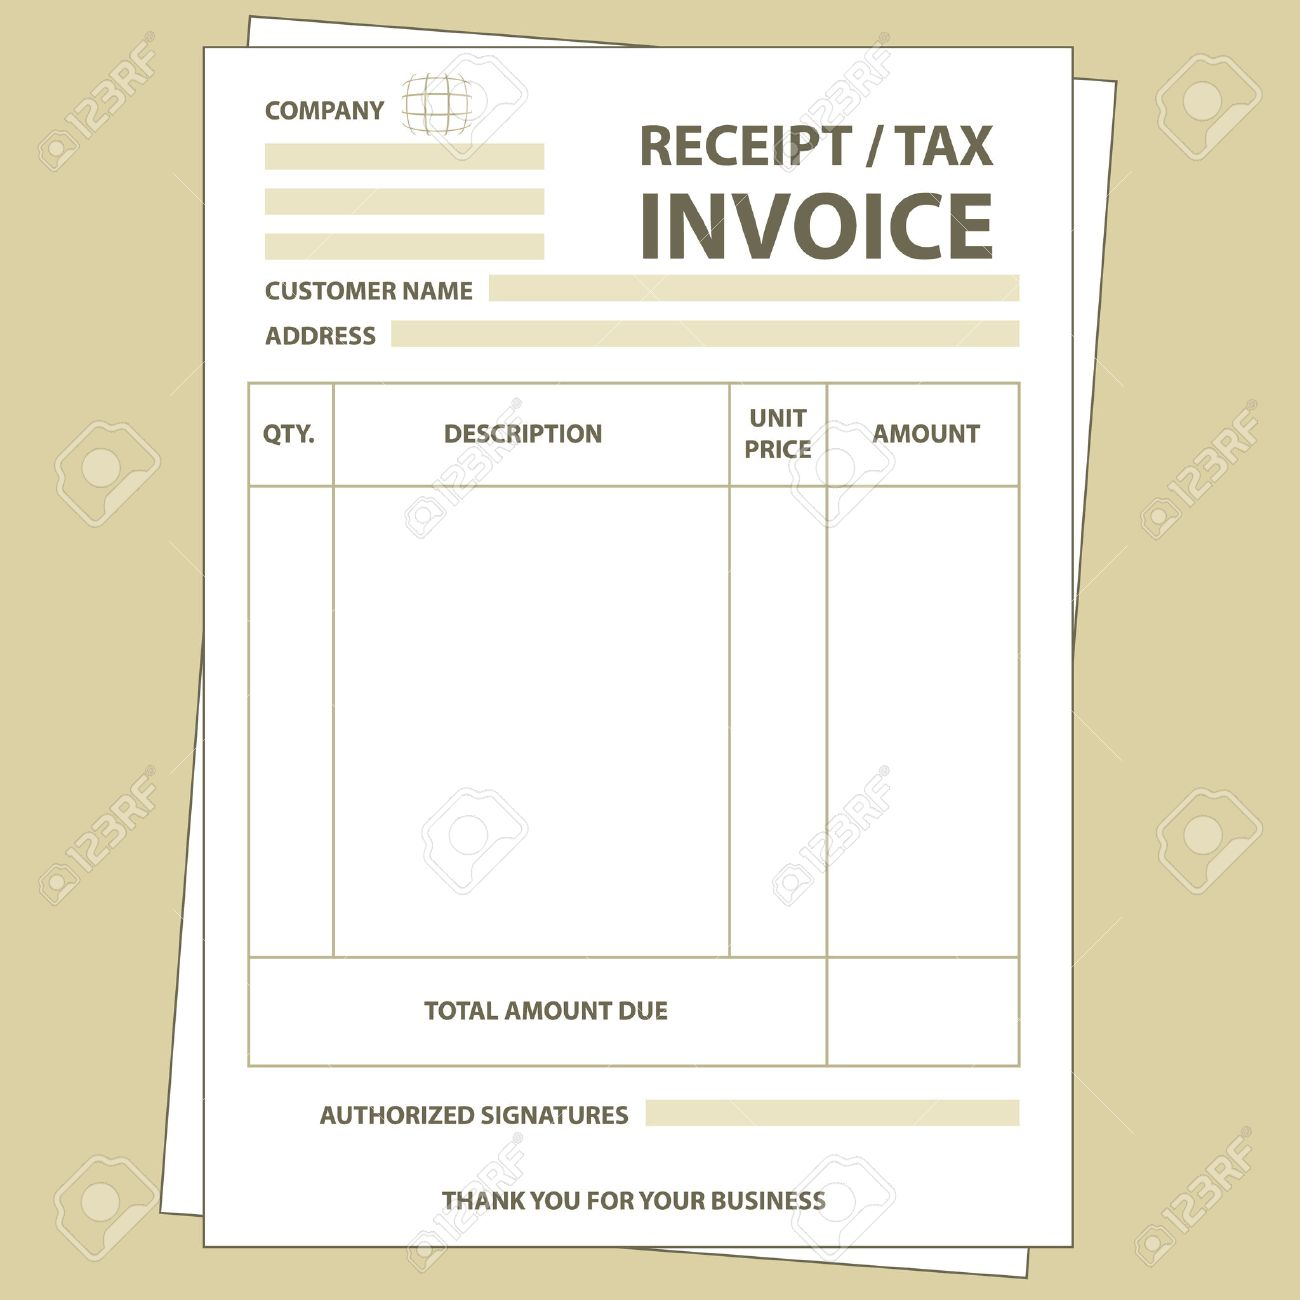 illustration of unfill paper tax invoice form royalty free, Invoice examples